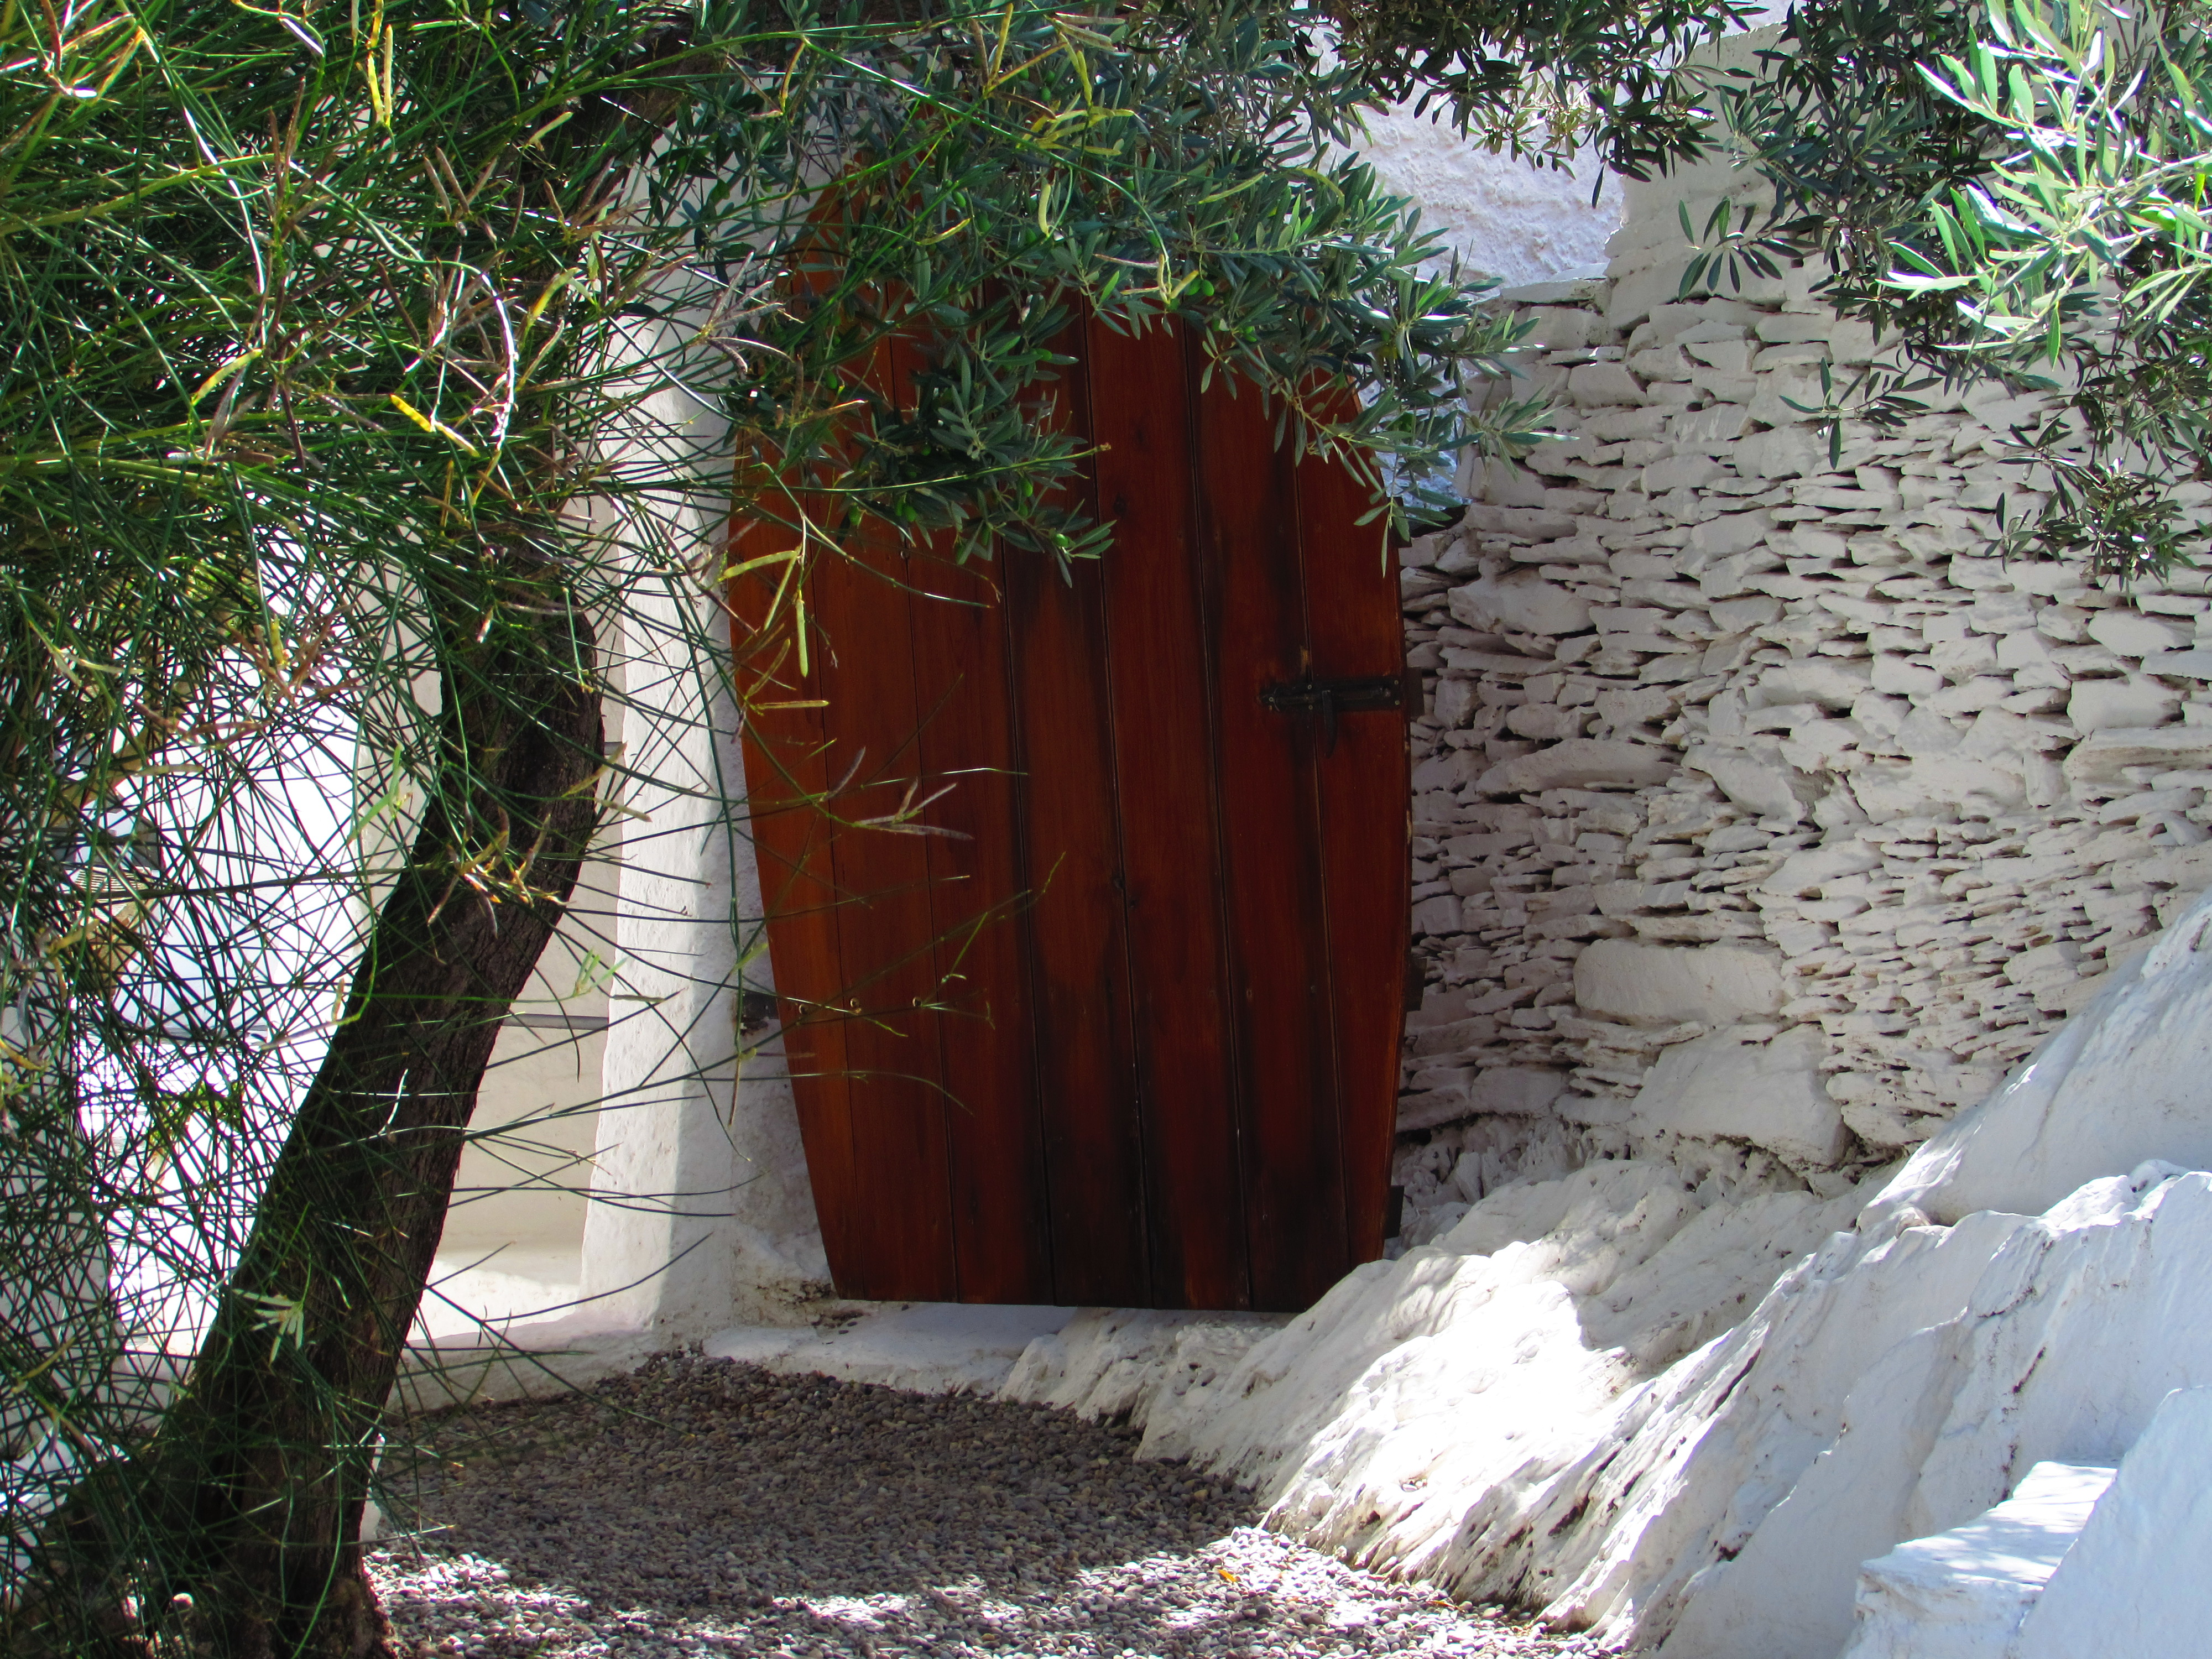 A beautiful door placed in the stone